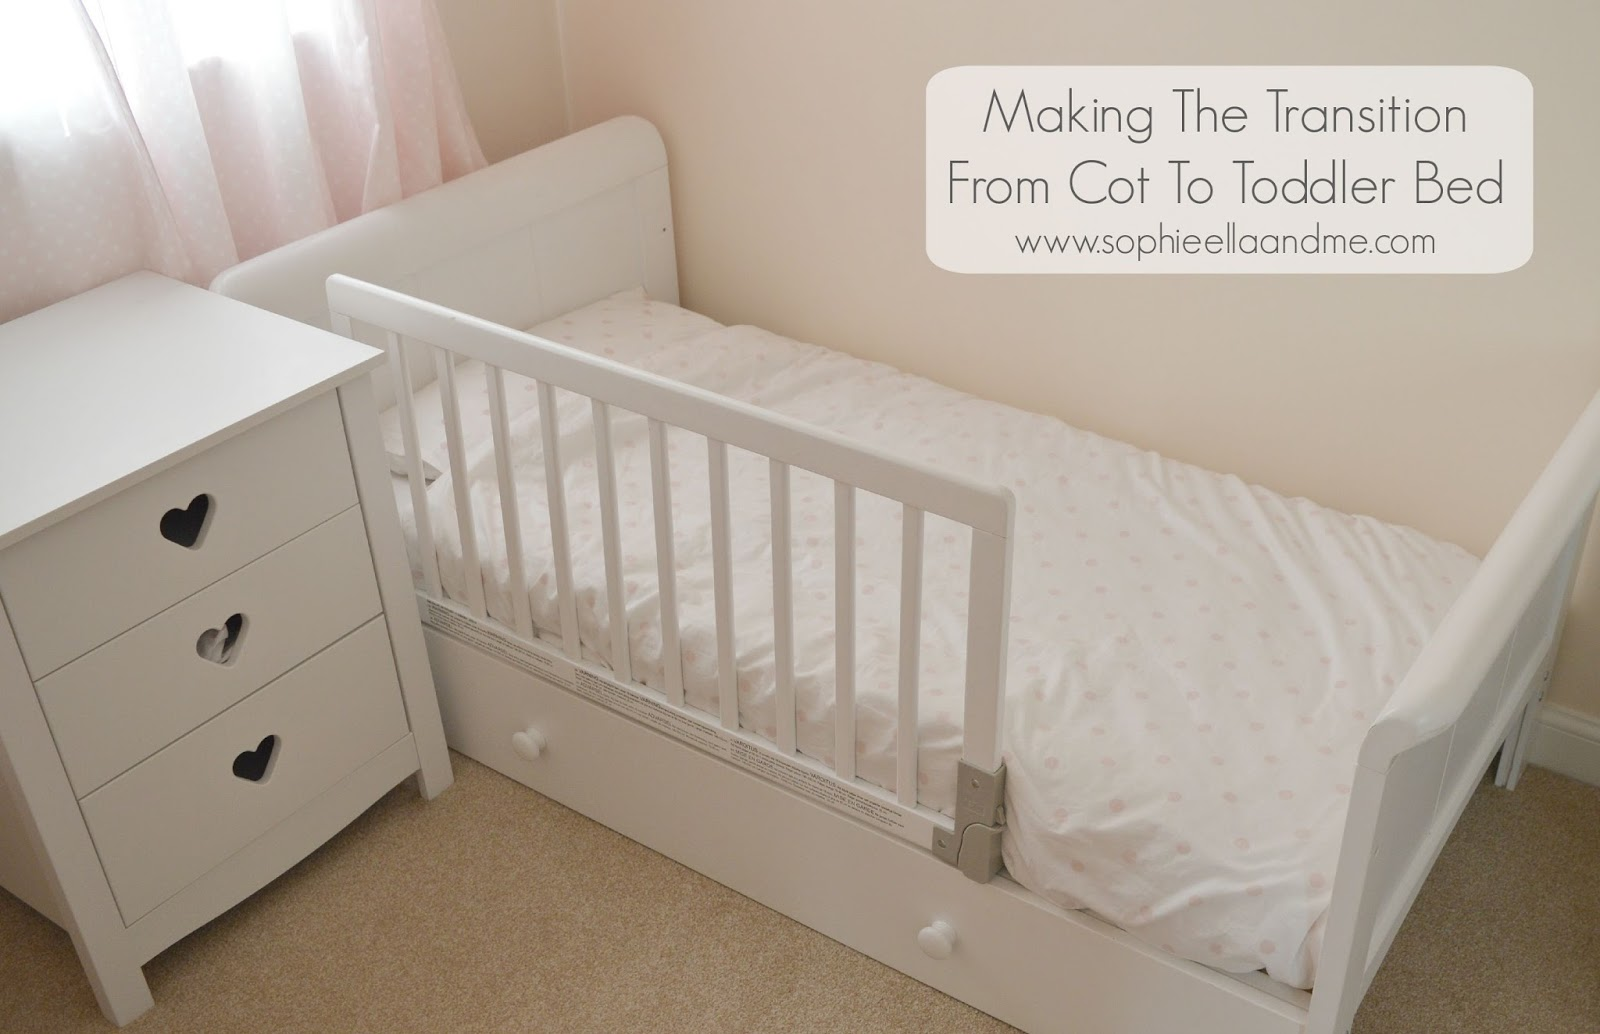 Making The Transition From Cot To Toddler Bed